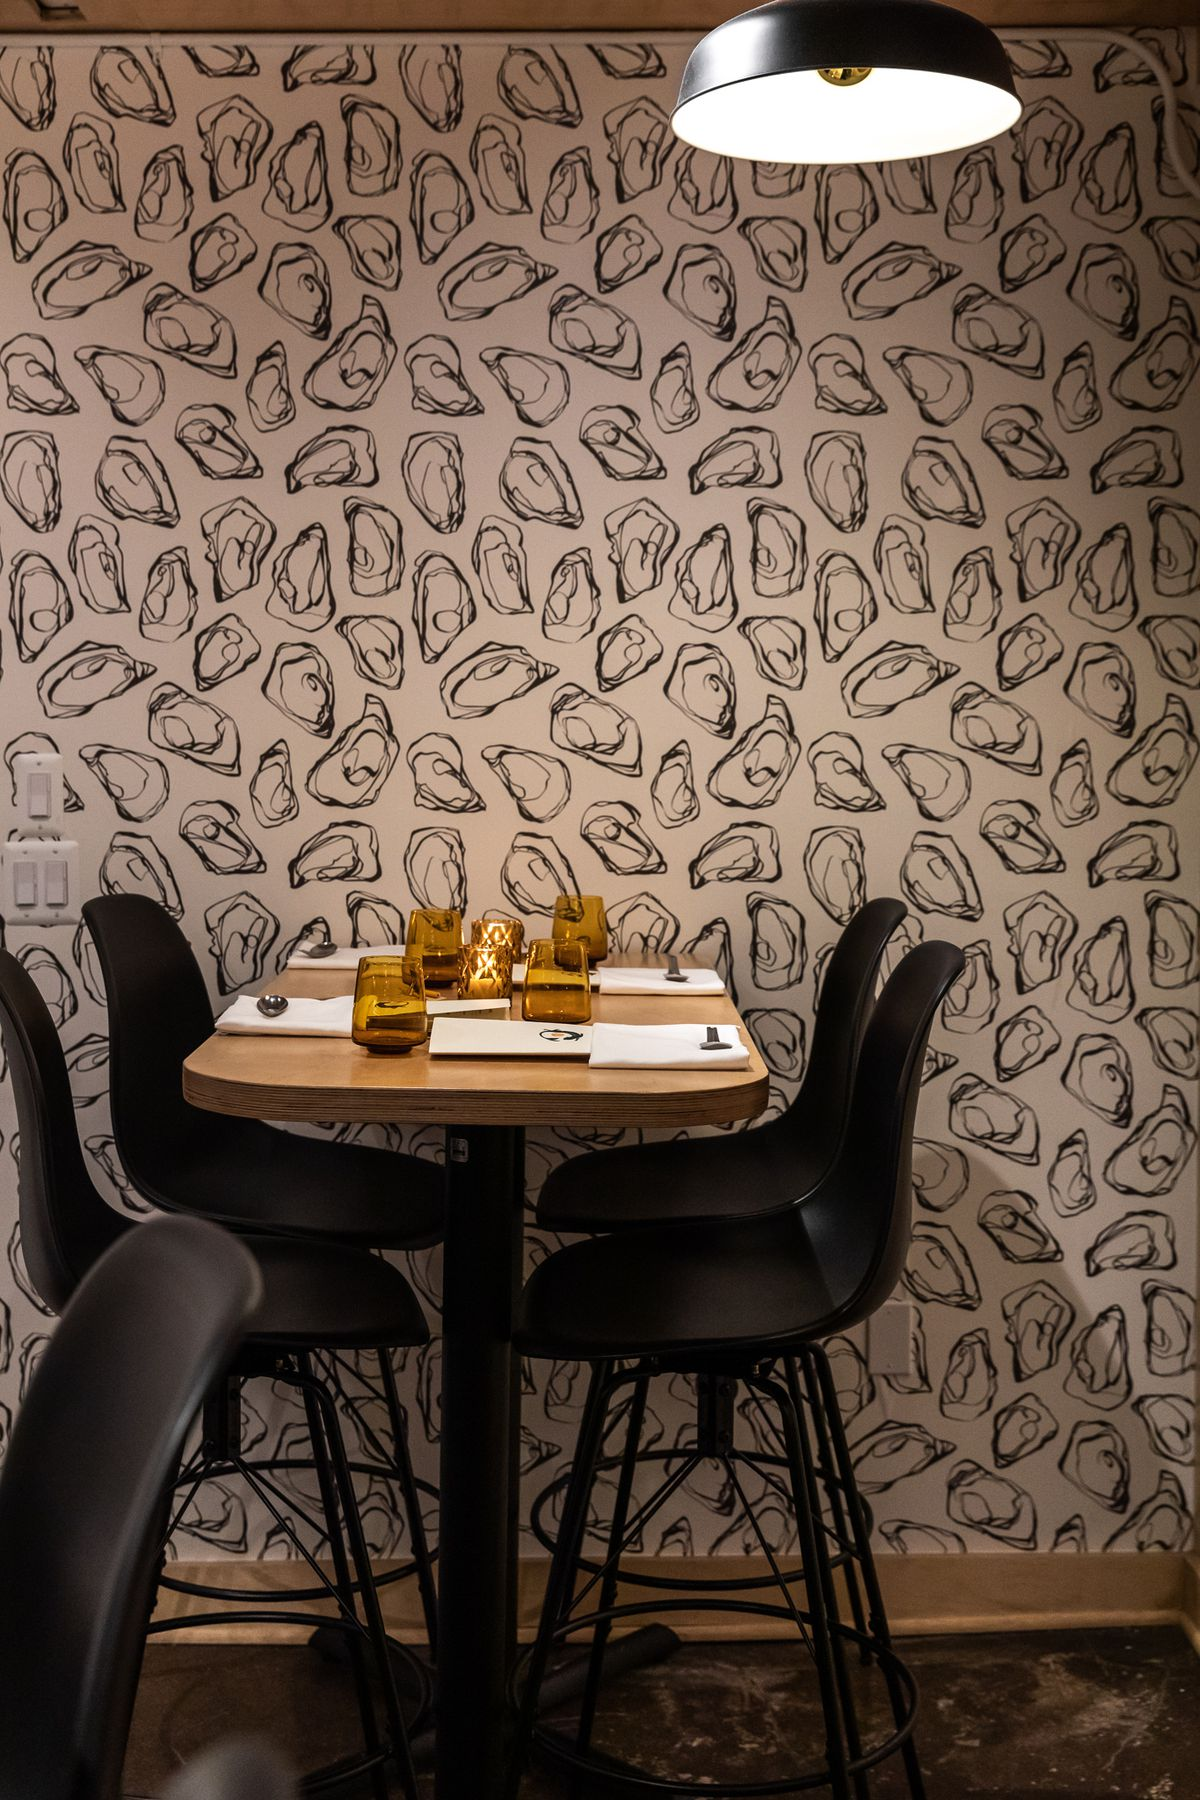 Black and white wallpaper on the back wall features illustrations of oyster shells next to a high-top table surrounded by four tall black stools.